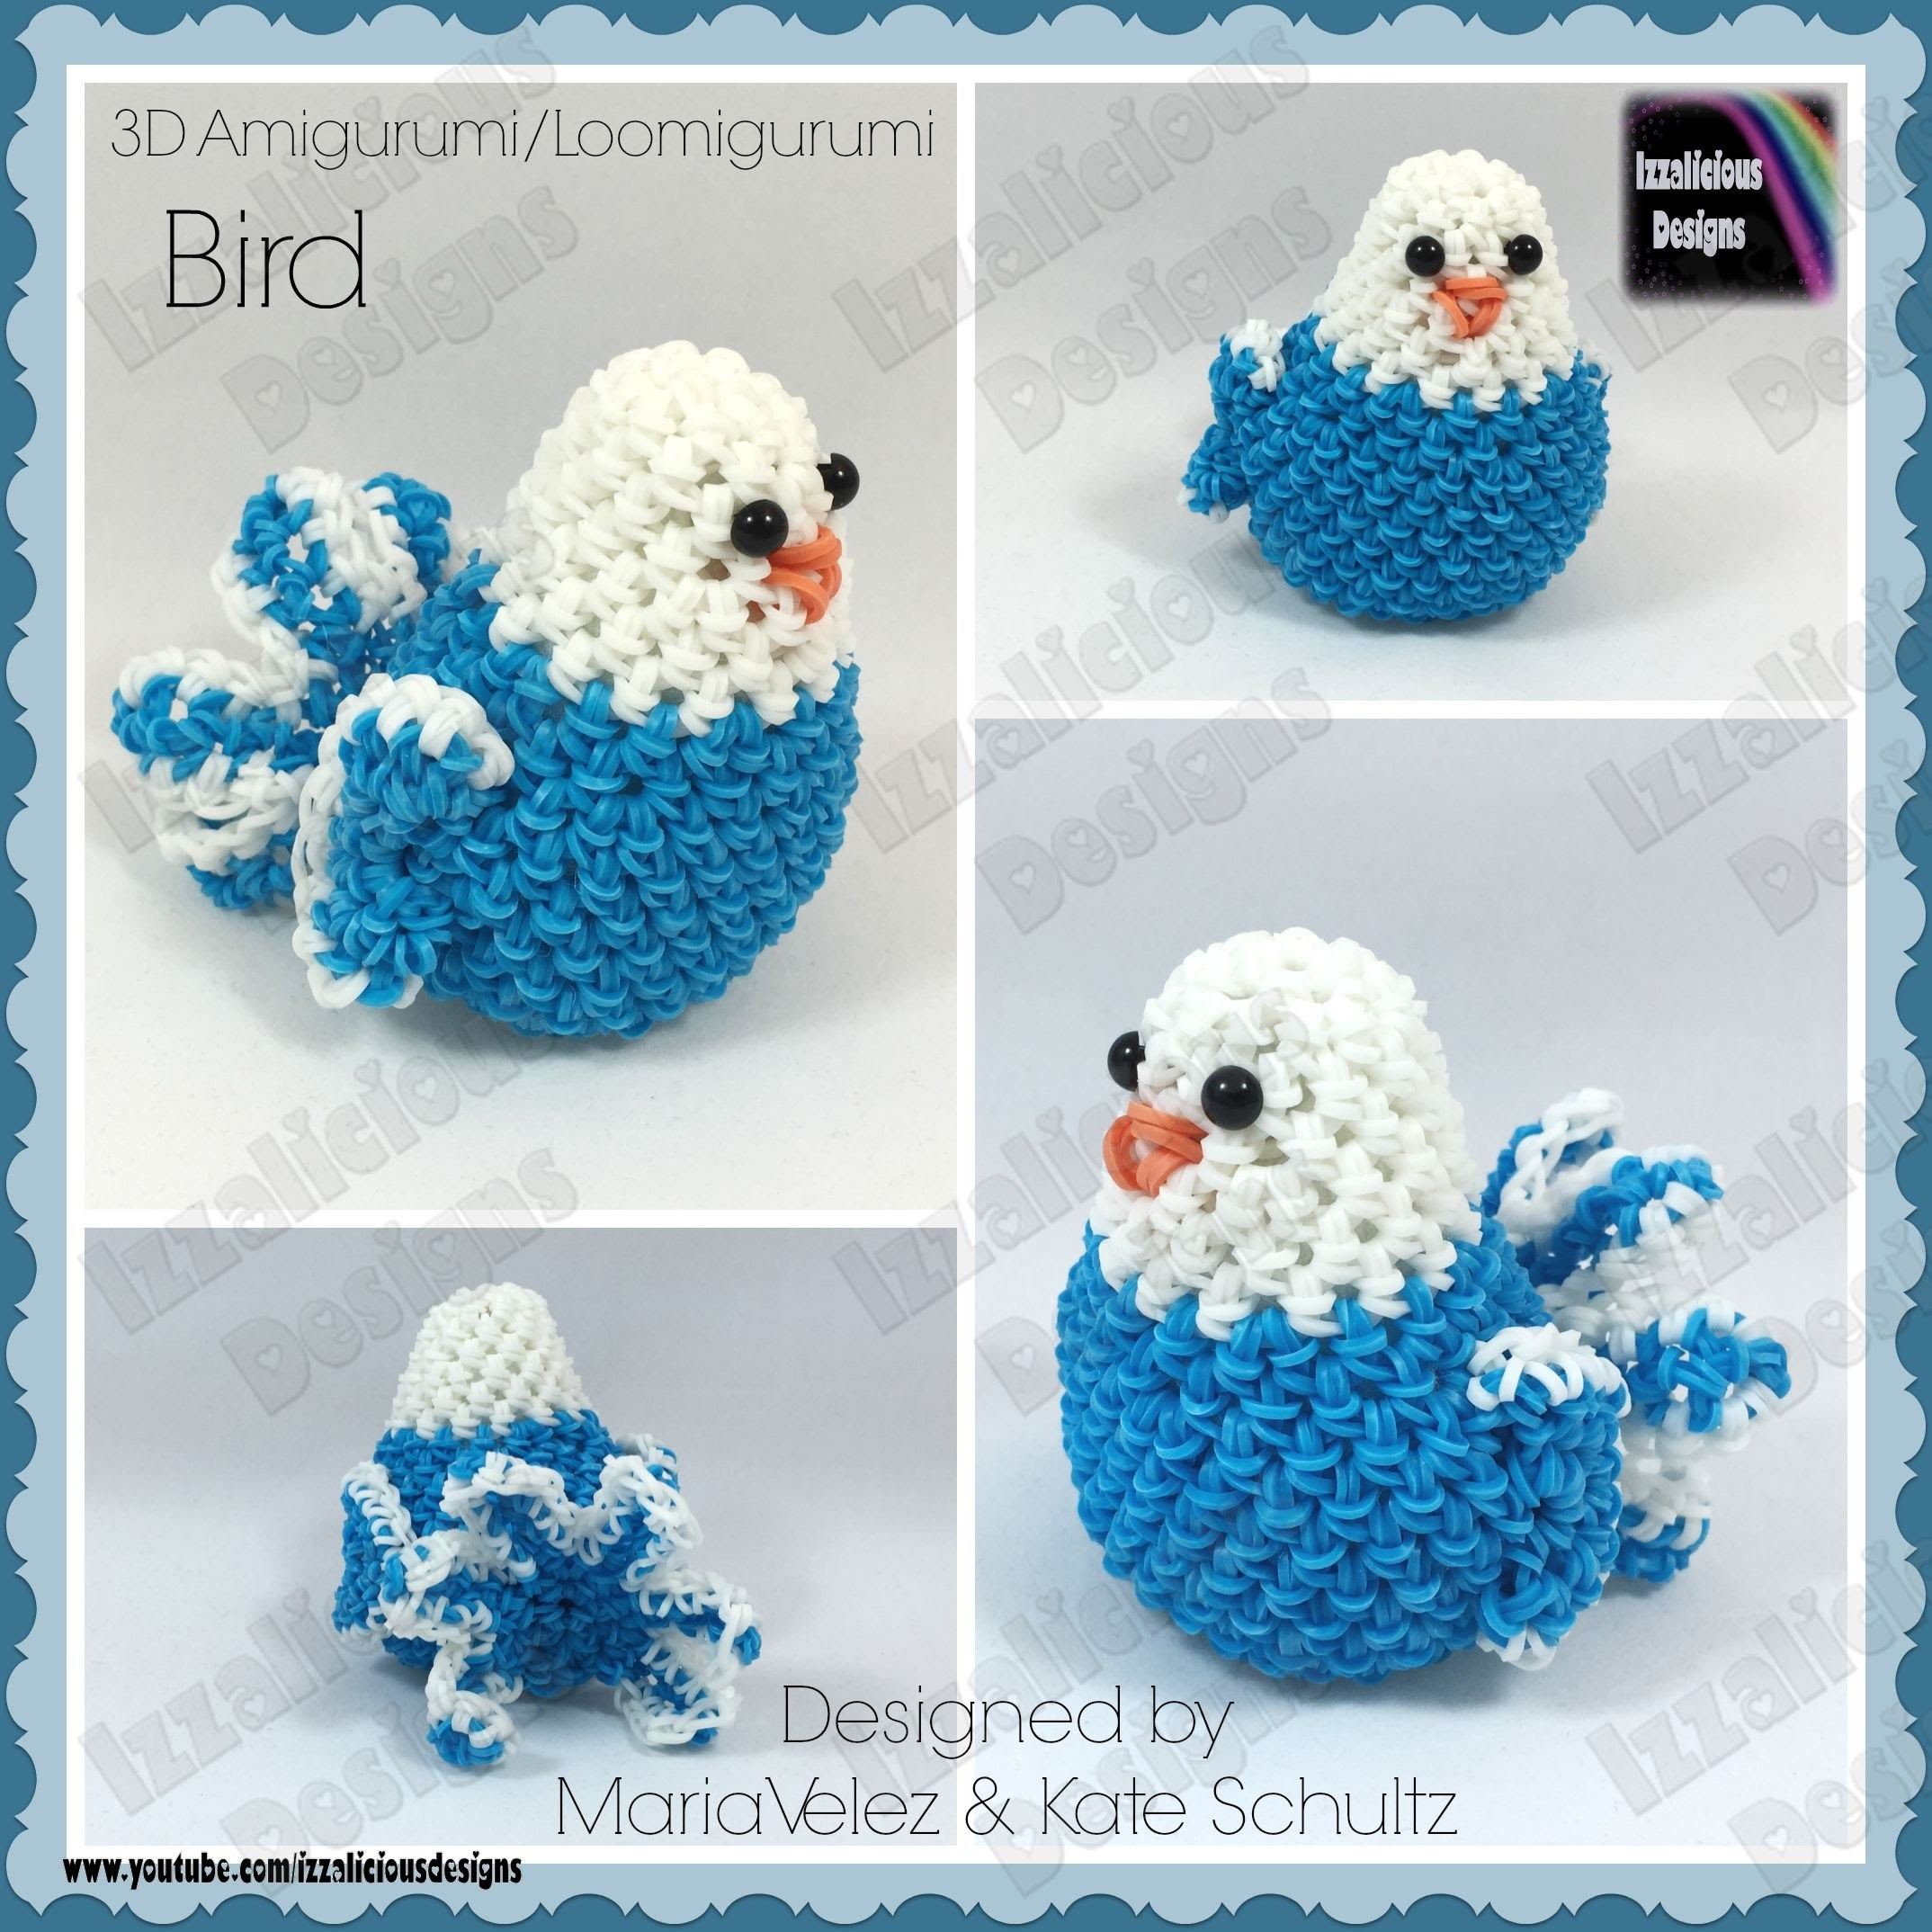 Rainbow Loom Bird Loomigurumi Amigurumi 3D Toy - crochet hook only - loomless